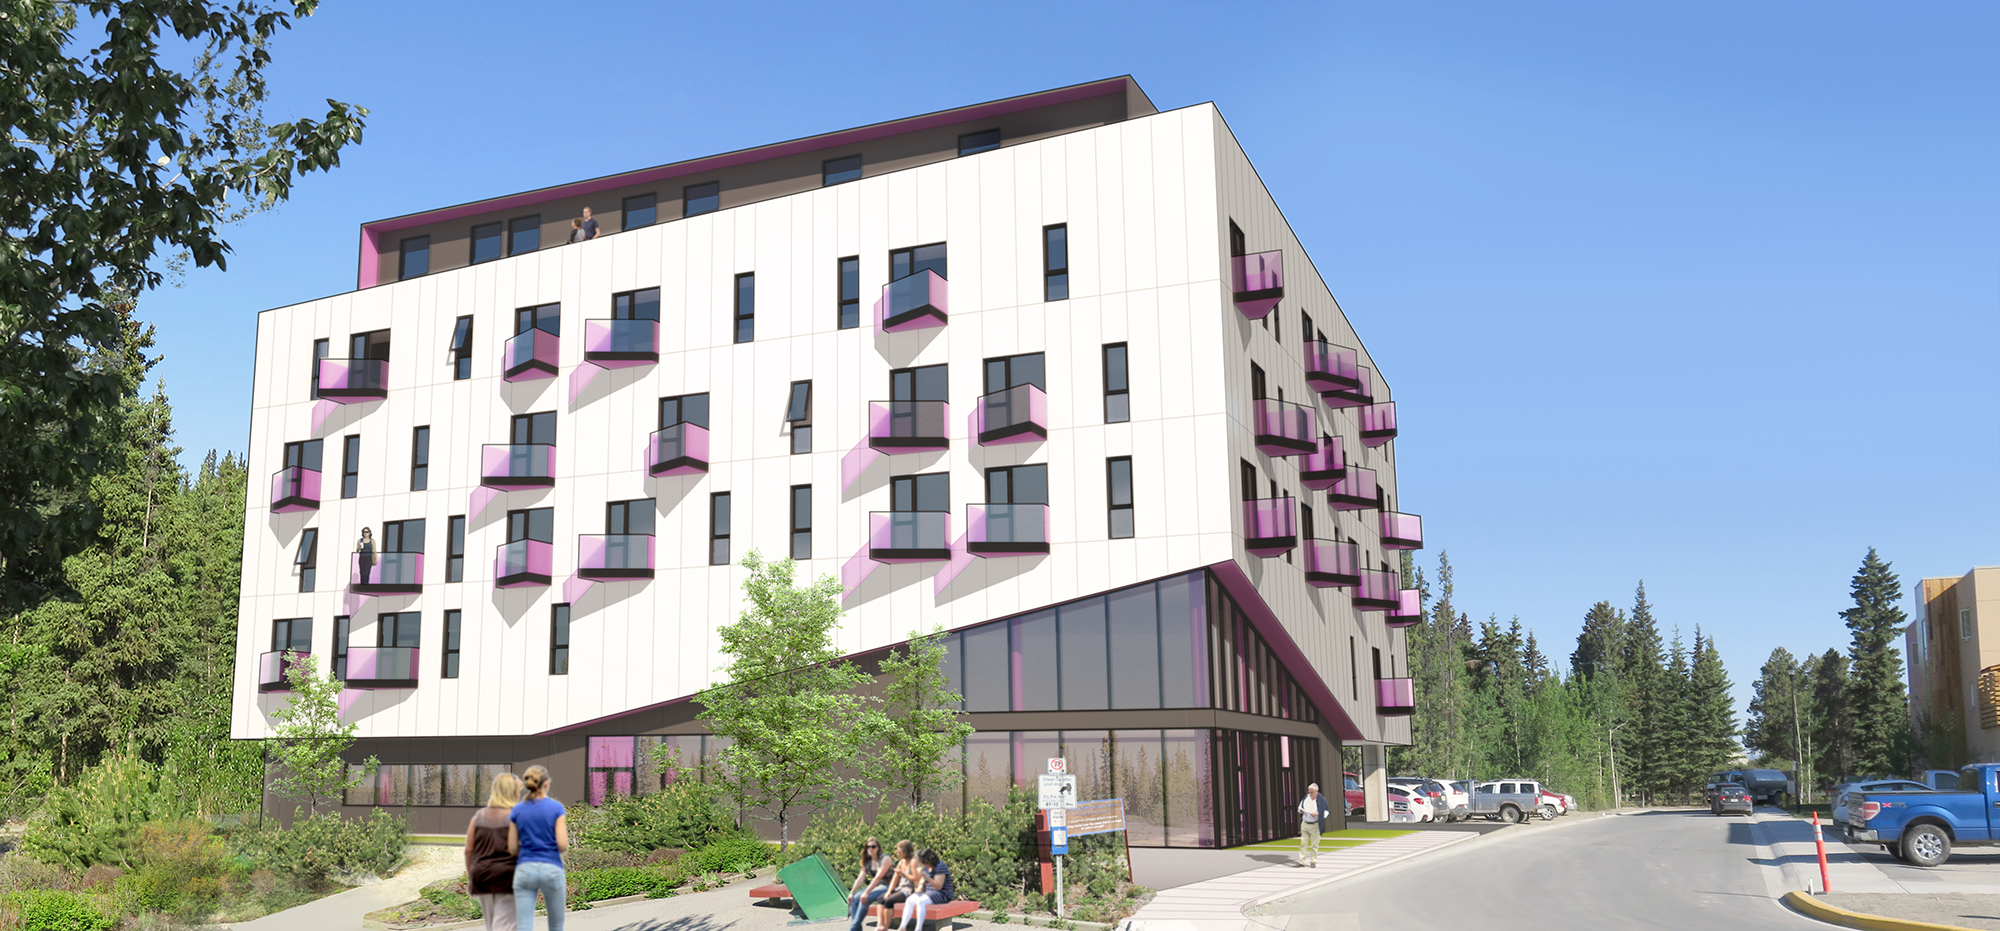 Rendering of Cornerstone Supportive + Affordable Housing building